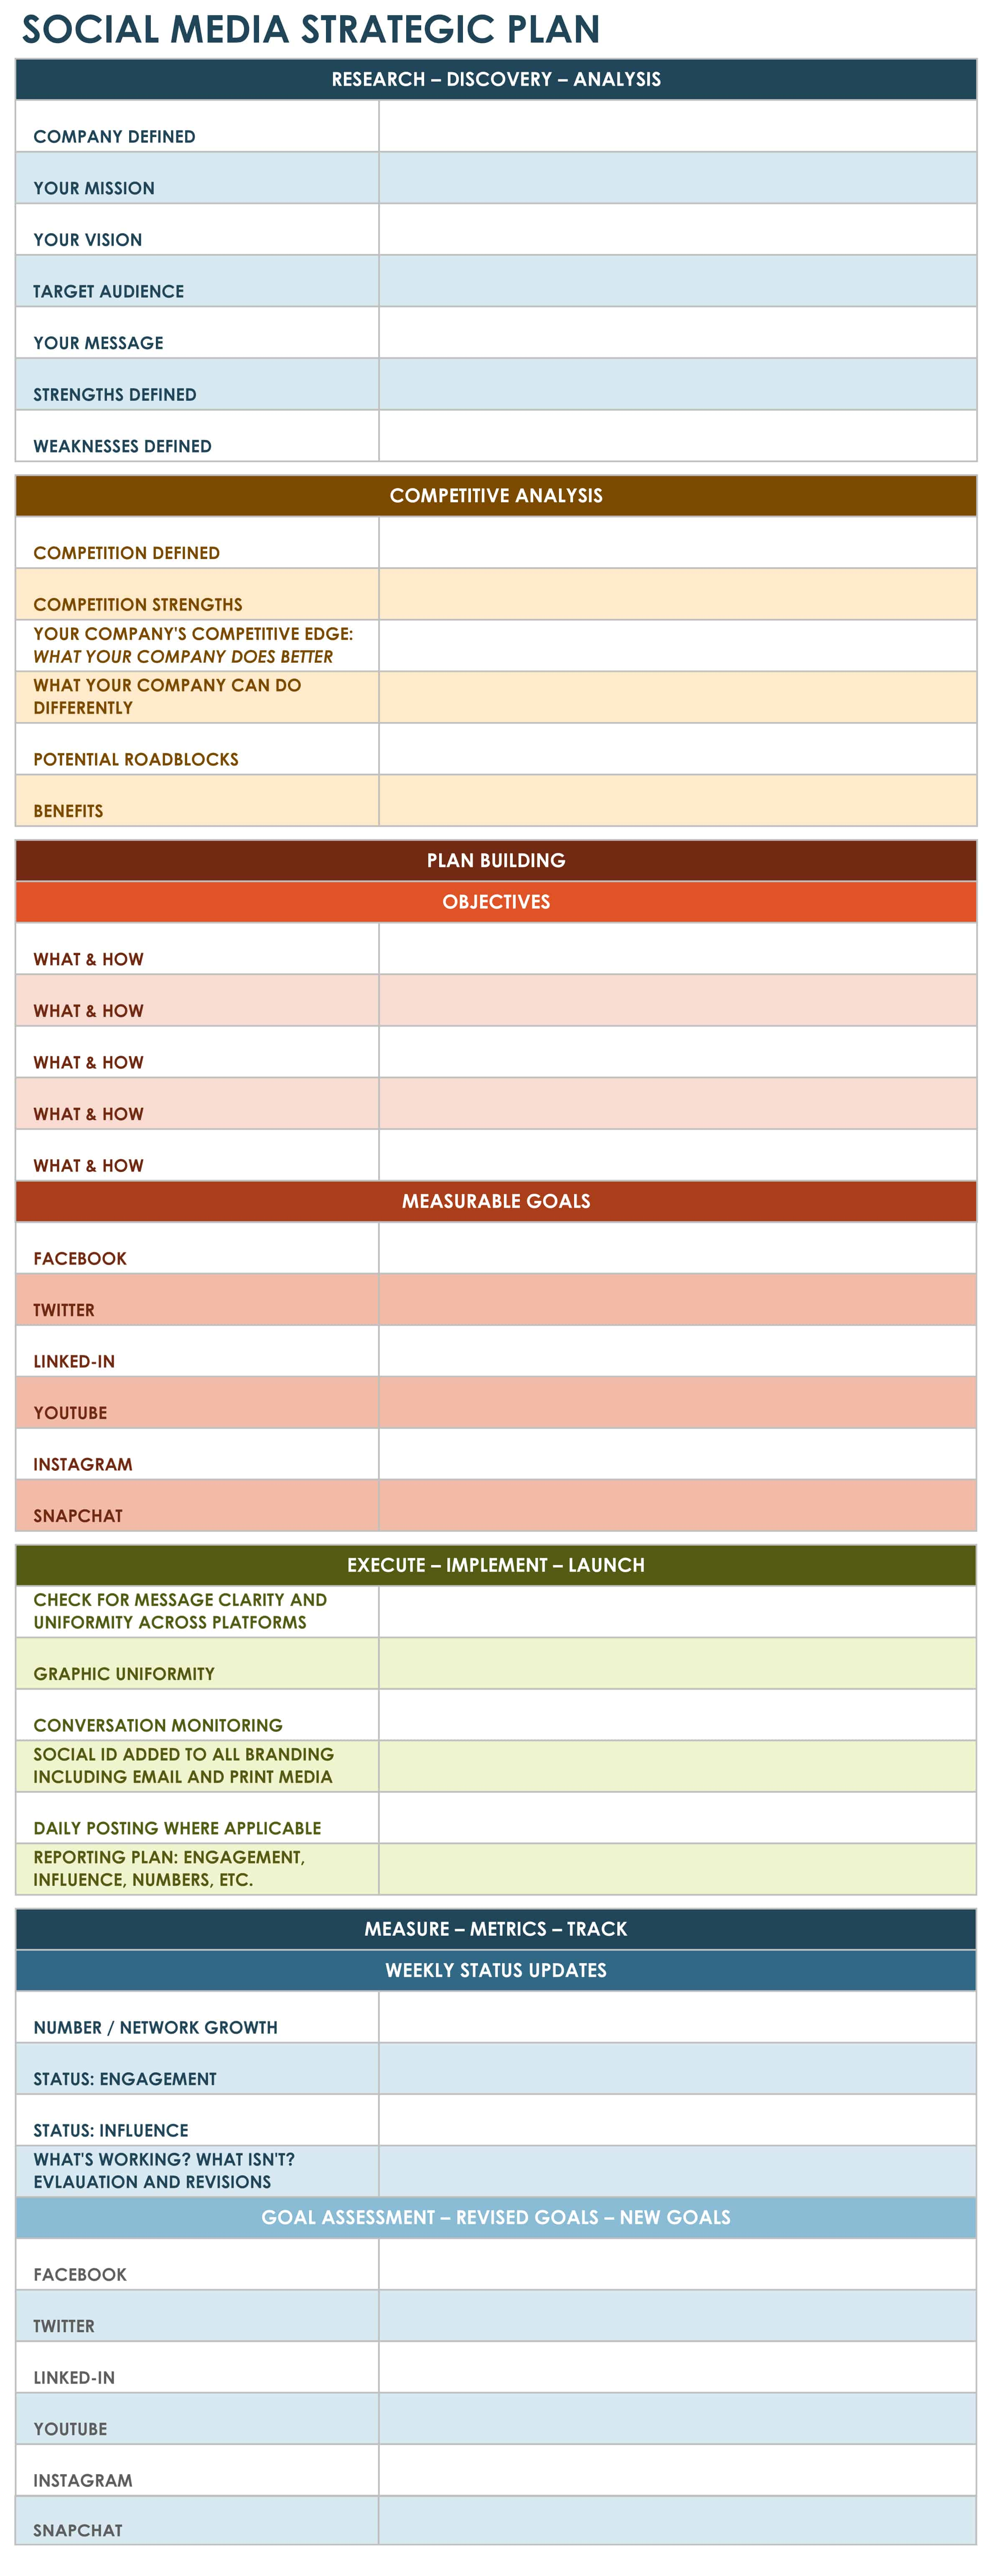 social media strategic plan excel template